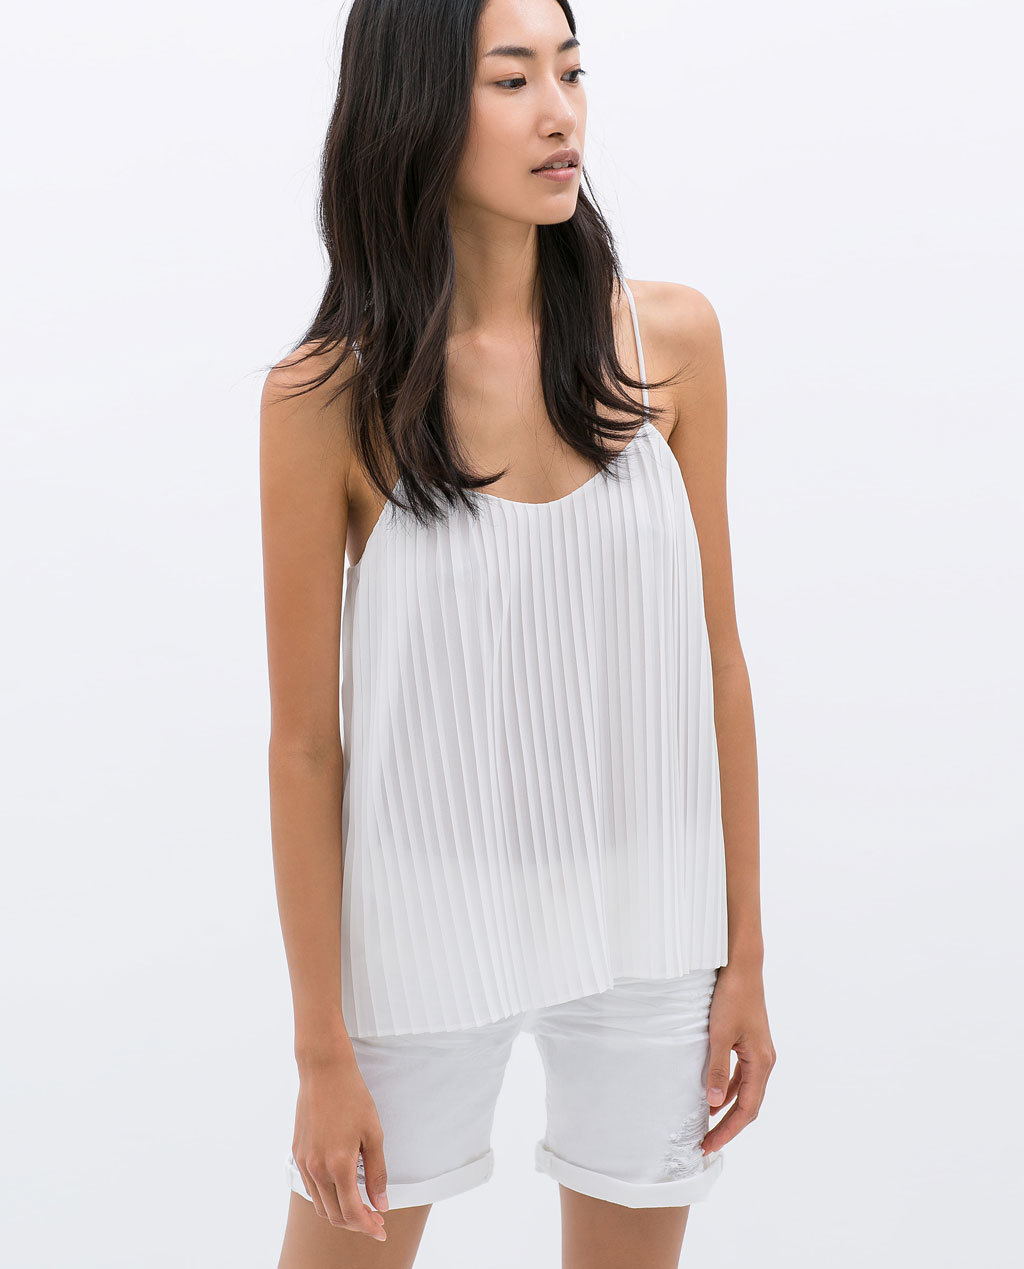 Pleated Top - sleeve style: spaghetti straps; pattern: plain; style: camisole; predominant colour: ivory/cream; occasions: casual, evening, holiday, creative work; length: standard; neckline: scoop; fibres: polyester/polyamide - 100%; fit: loose; sleeve length: sleeveless; texture group: sheer fabrics/chiffon/organza etc.; bust detail: tiers/frills/bulky drapes/pleats; pattern type: fabric; season: s/s 2014